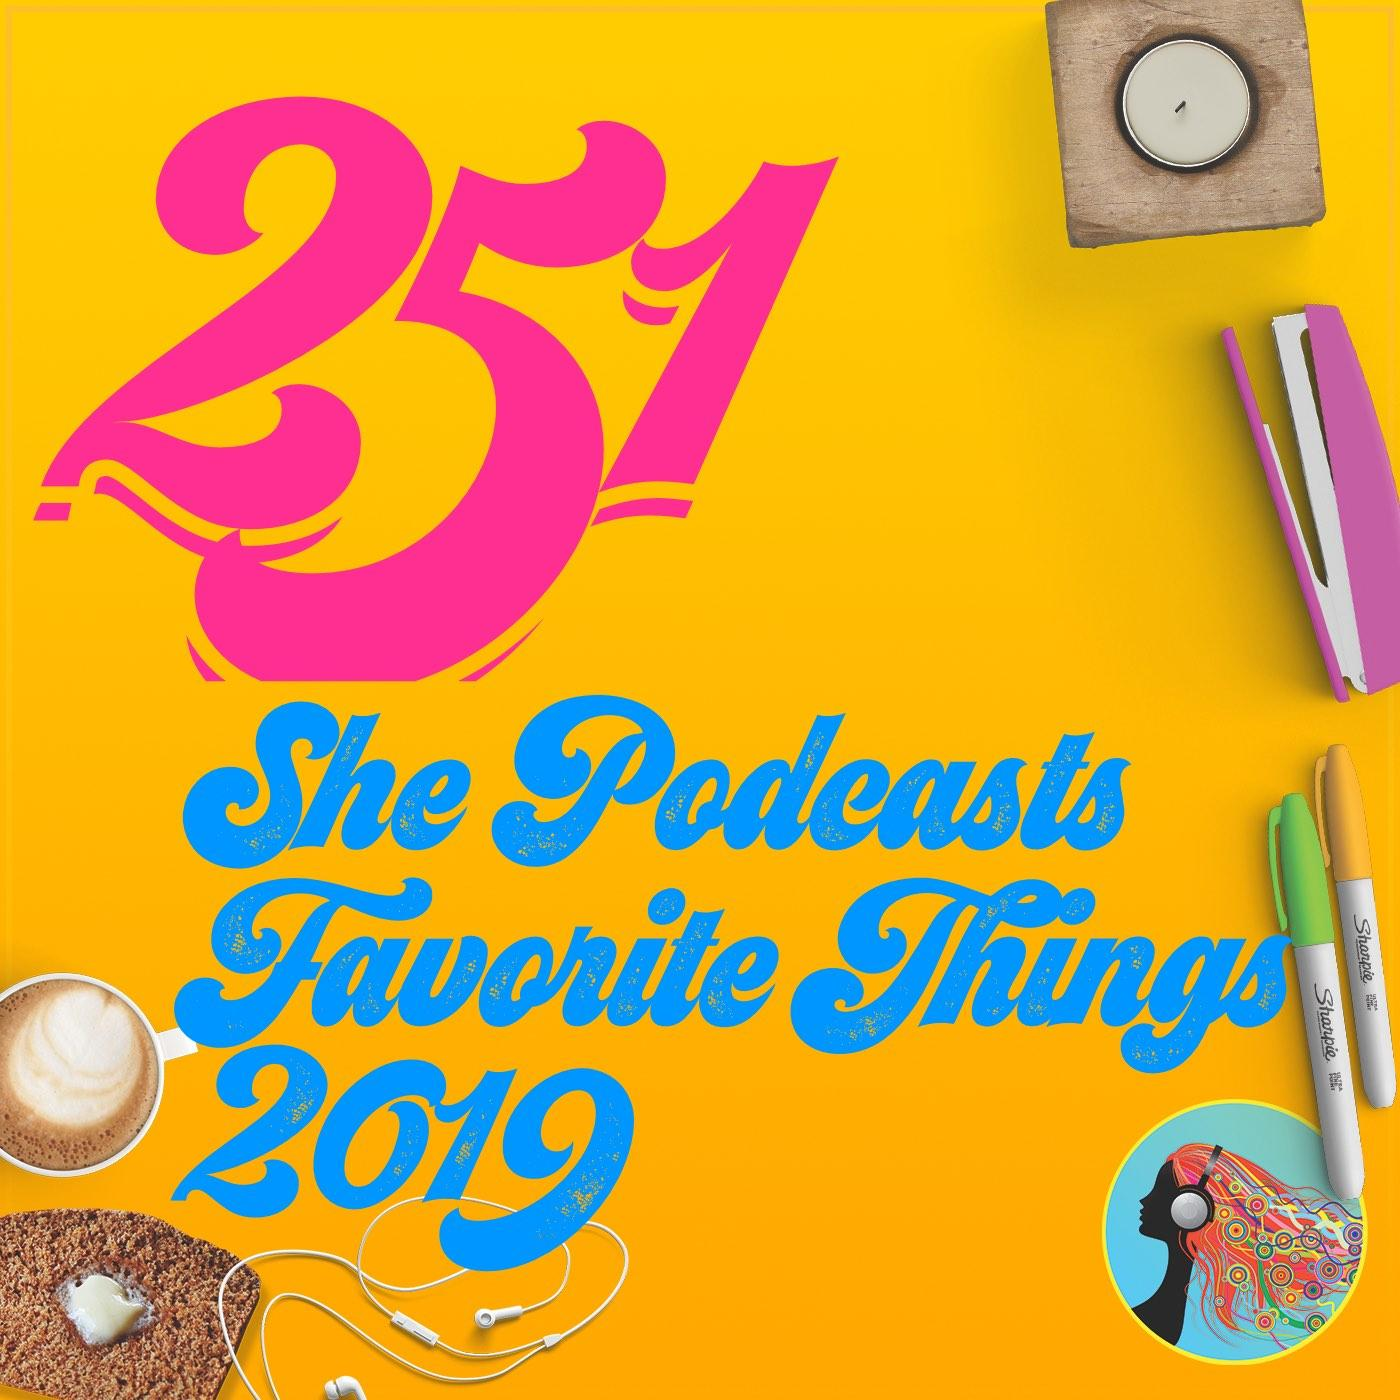 251 She Podcasts Favorite Things 2019